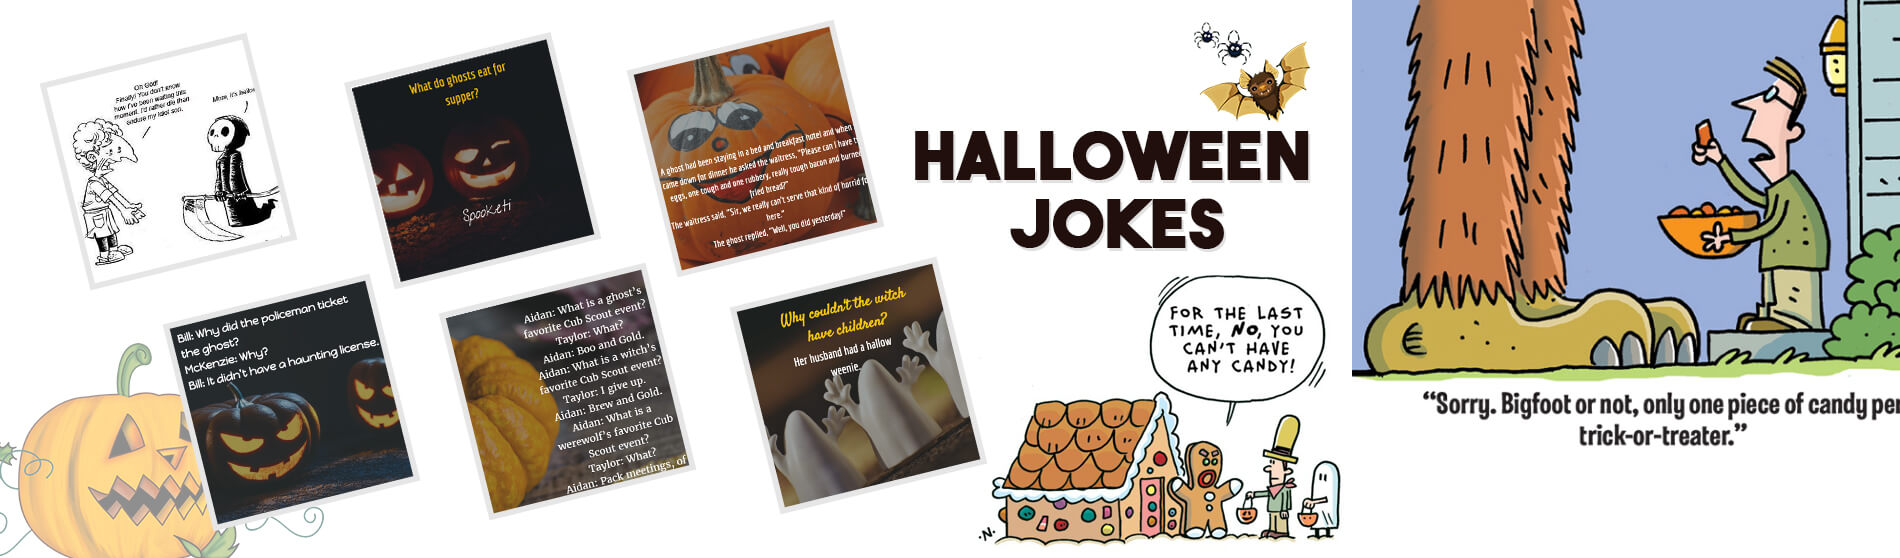 Halloween-jokes